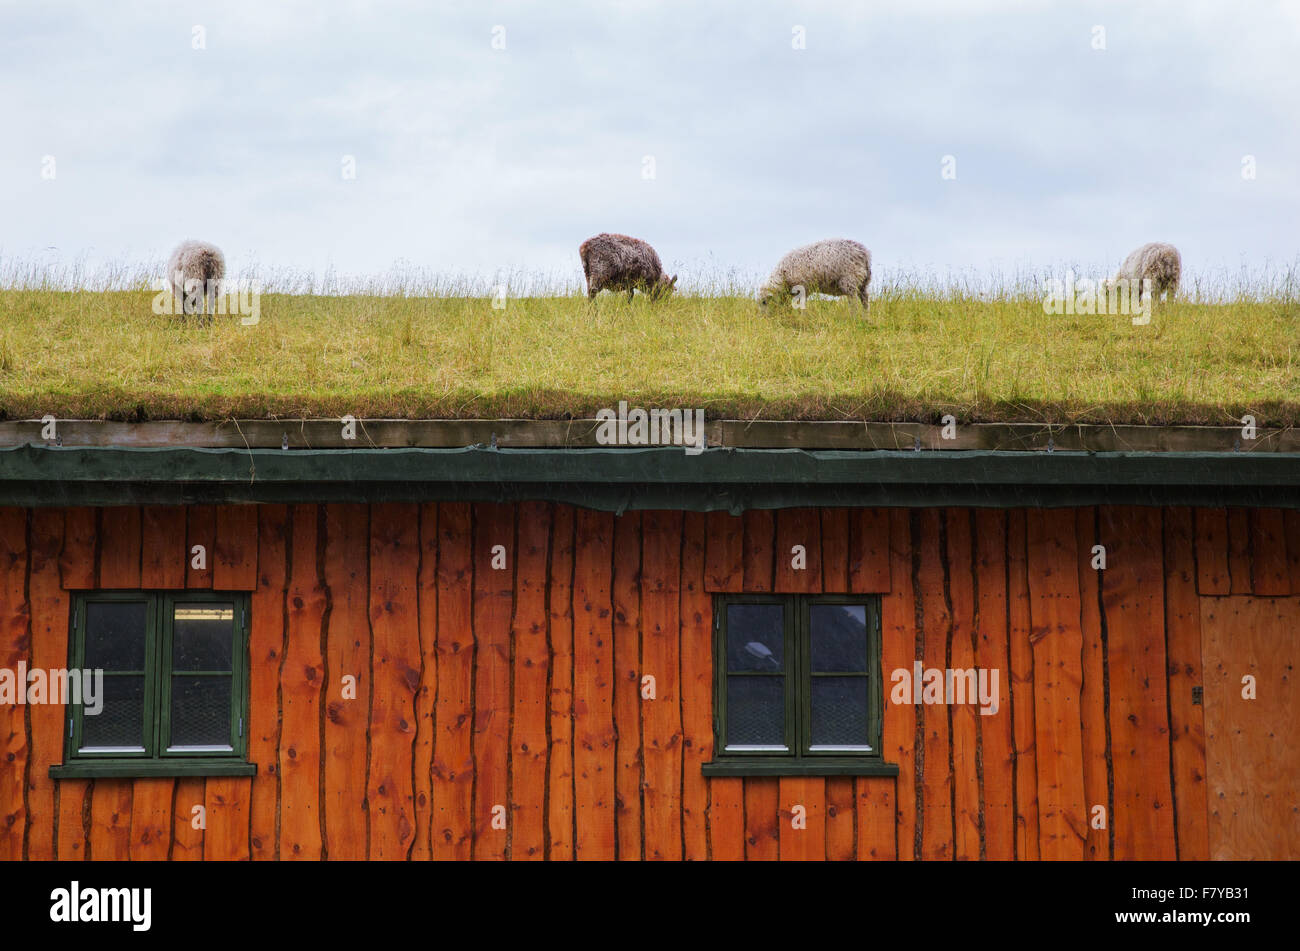 Sheep grazing on the grass roof of a wooden house in the Lofoten Islands of Norway - Stock Image